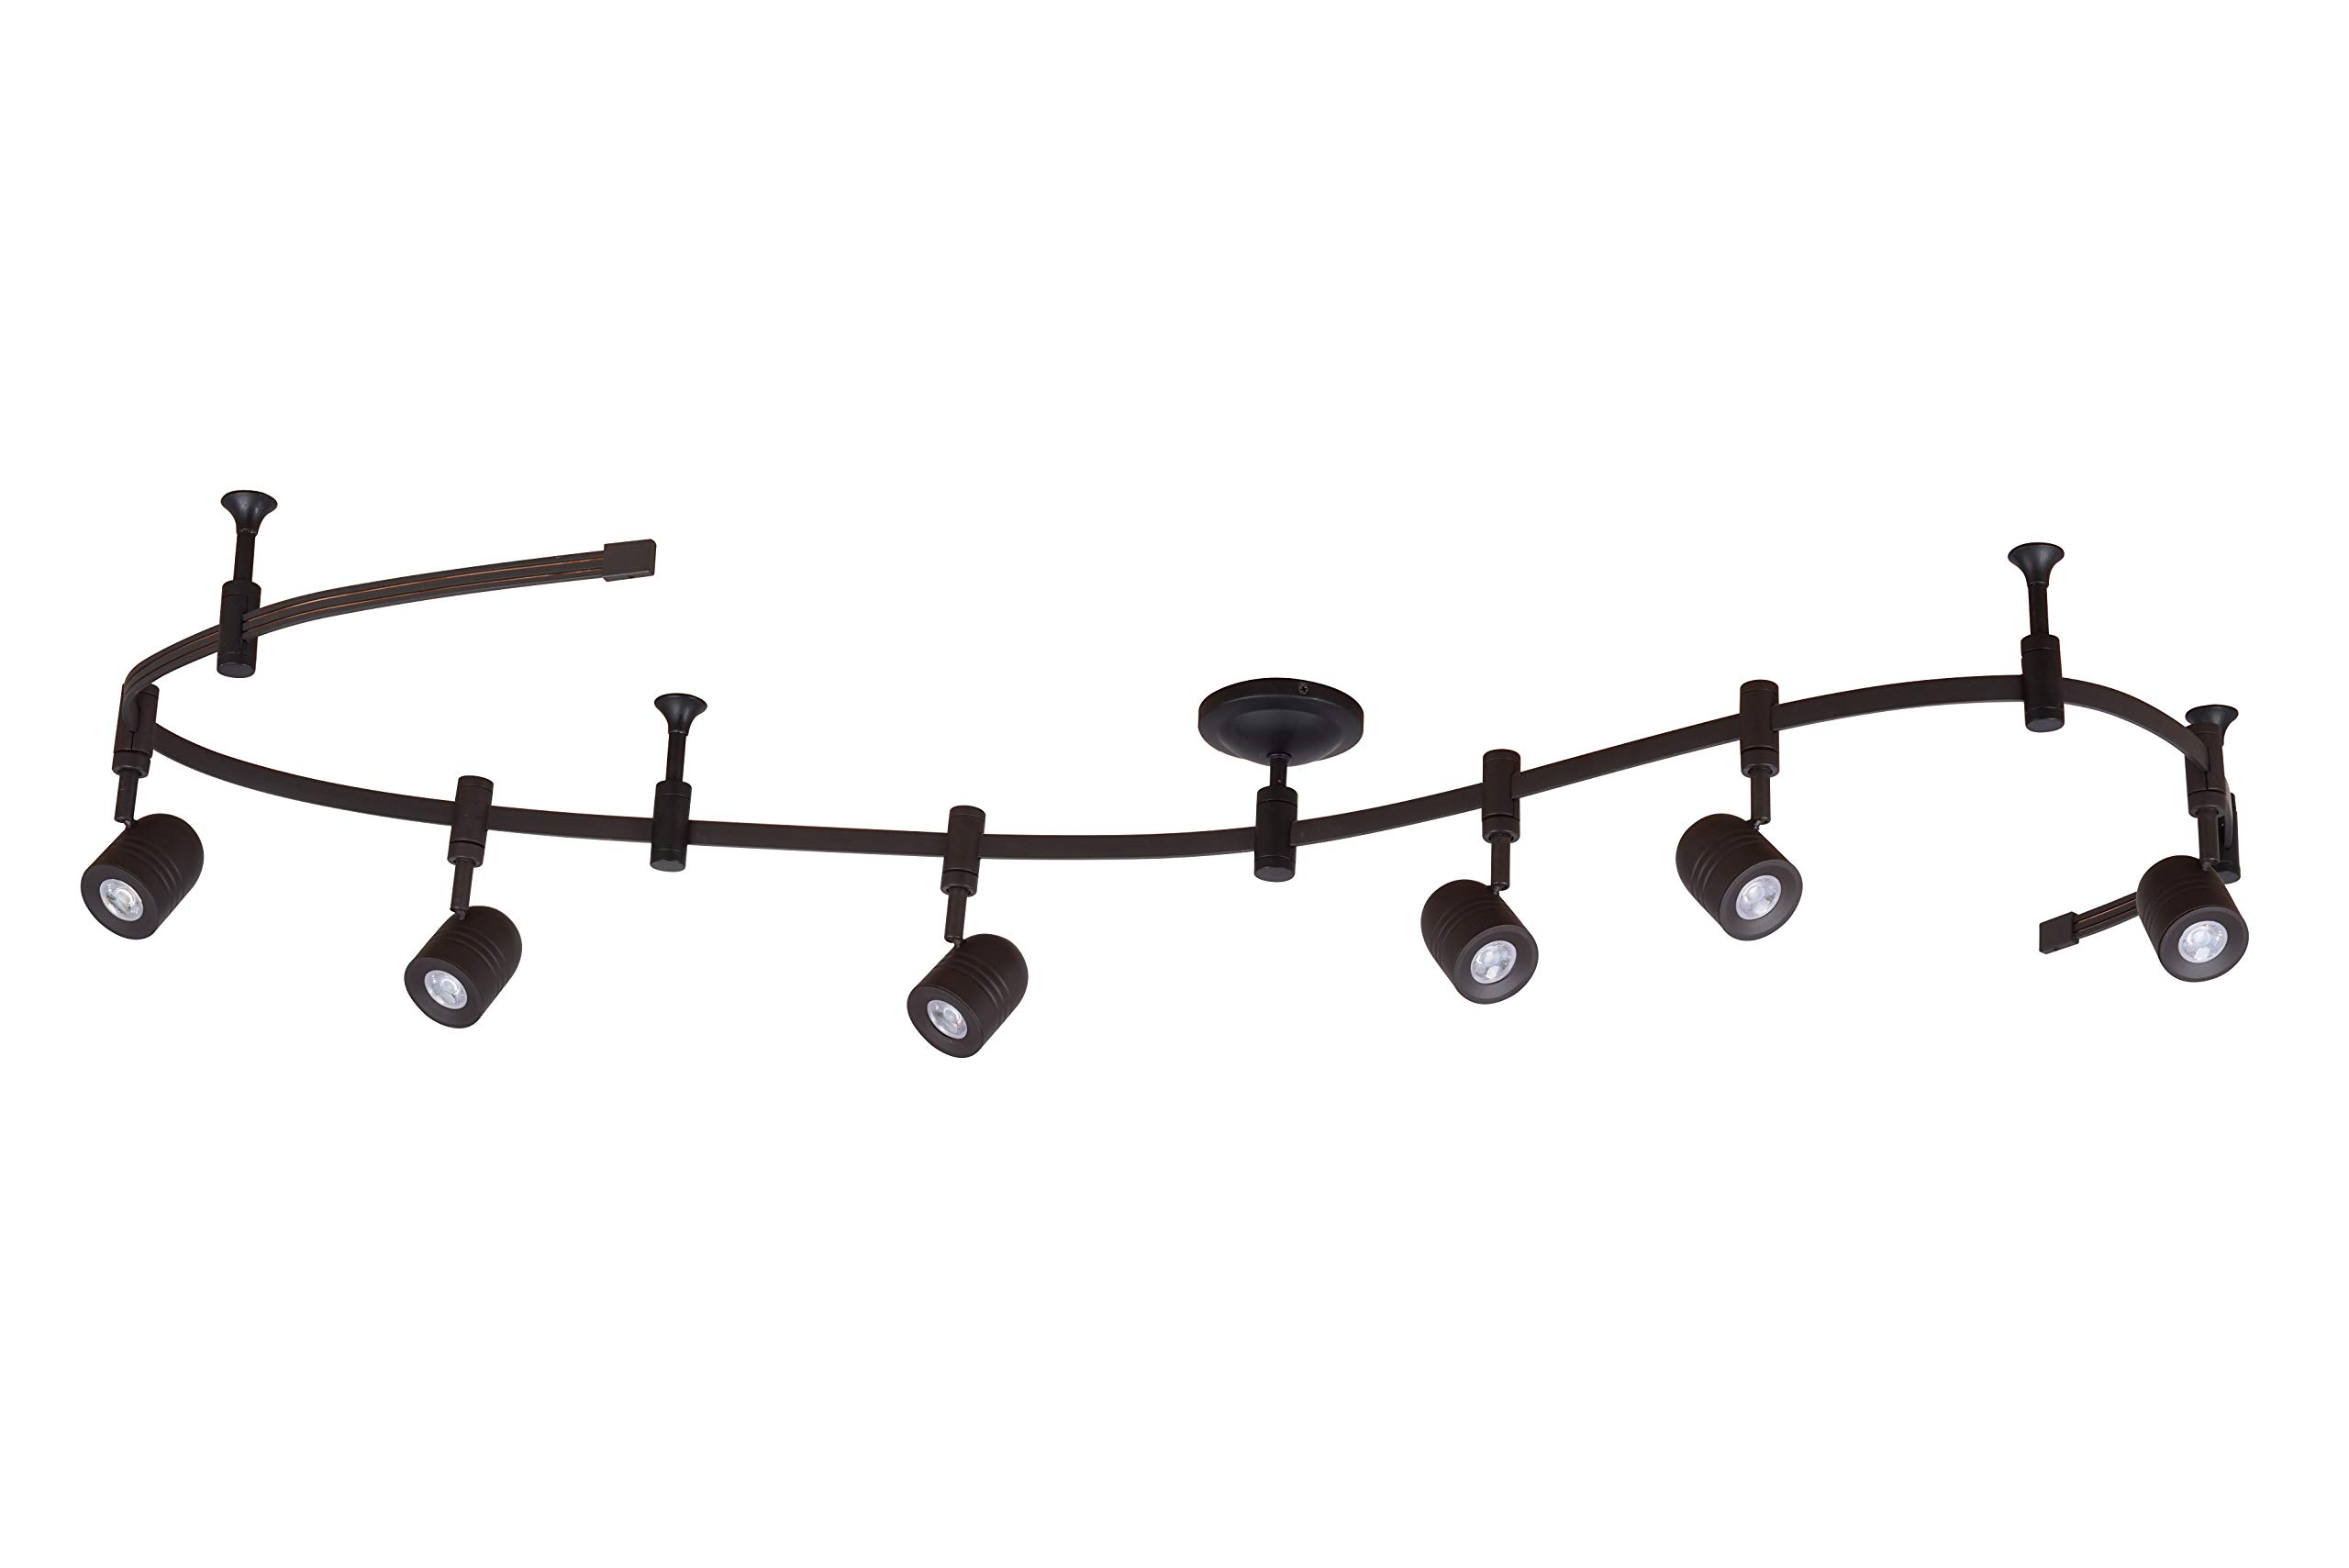 Catalina Lighting 21903-000 Transitional 6 Integrated LED Flex Track Ceiling Light, Bulbs Included, 96'', Bronze by Catalina Lighting (Image #1)